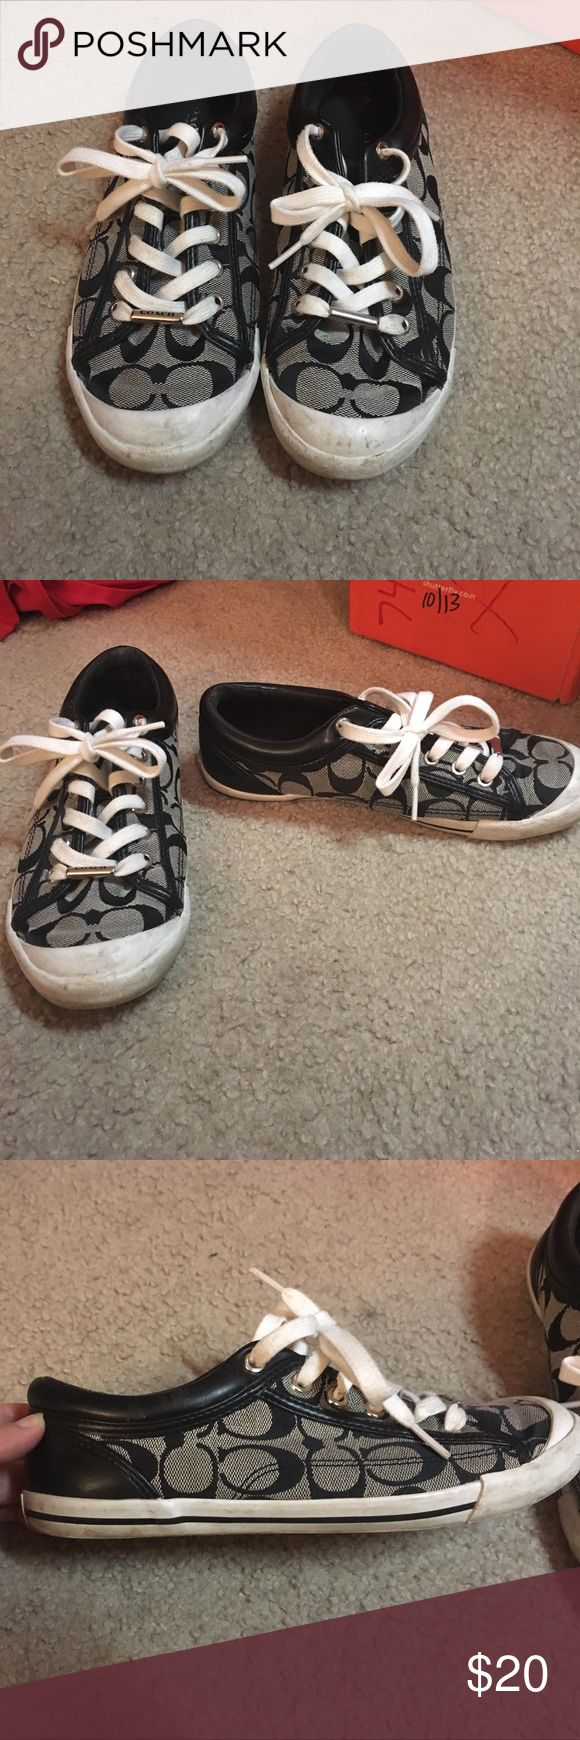 Coach tennis shoes A moderately worn pair of authentic coach tennis shoes, mild dirt marks on toe but will come off with a wipe. Other than that no staining on fabric Coach Shoes Sneakers